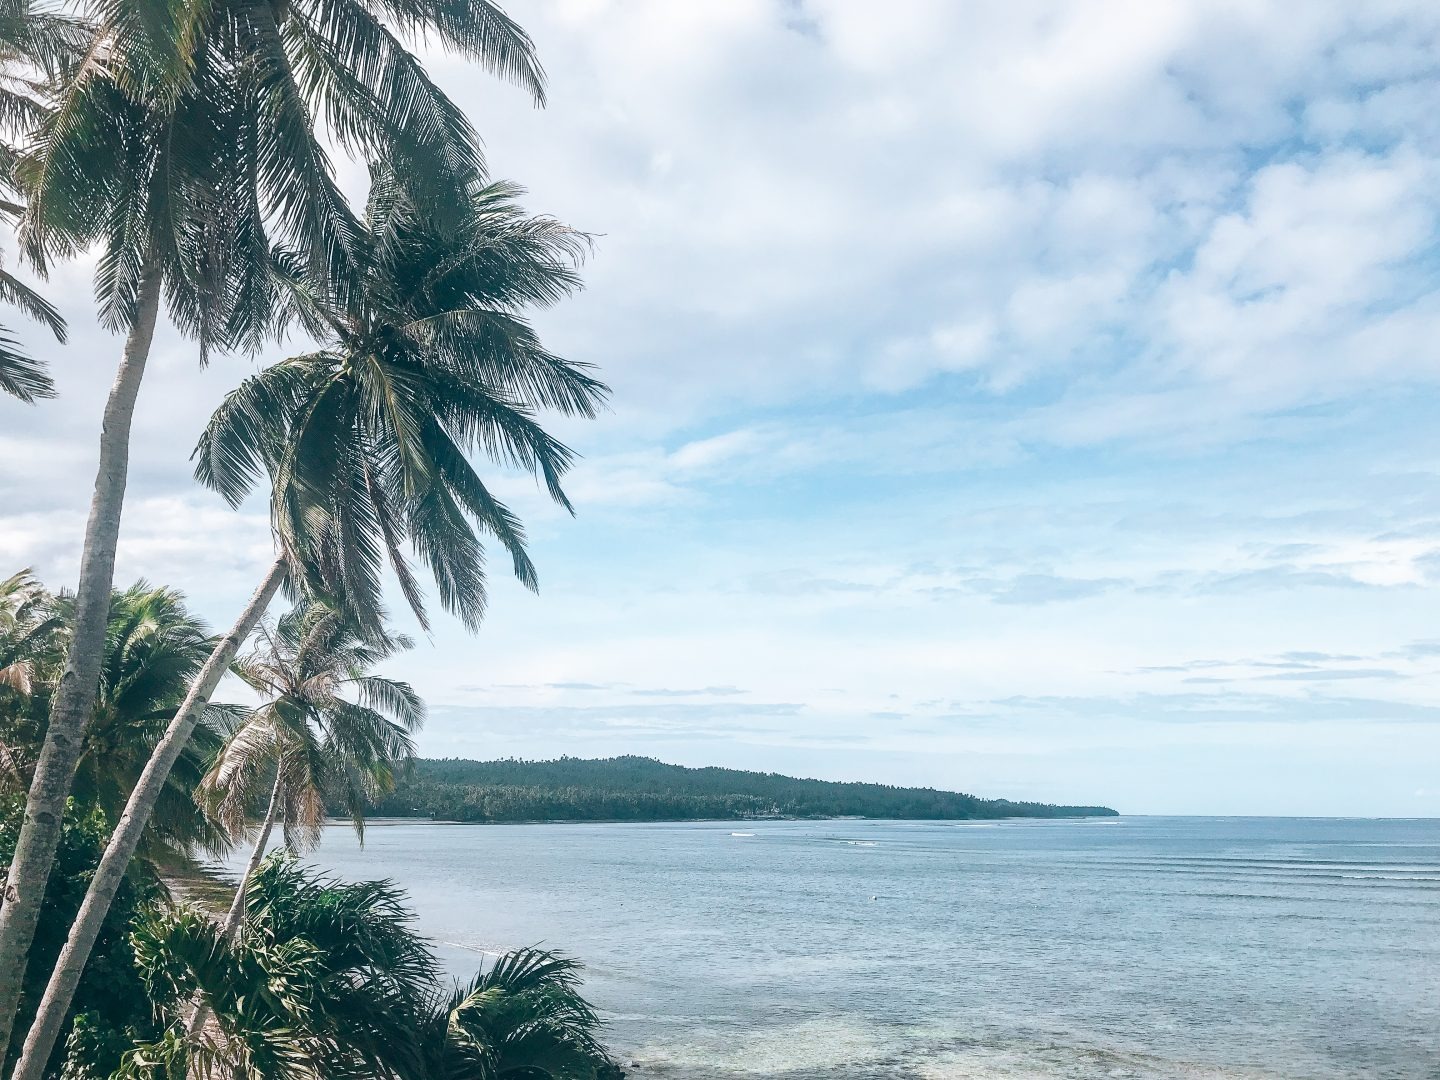 Views of Siargao with palm trees